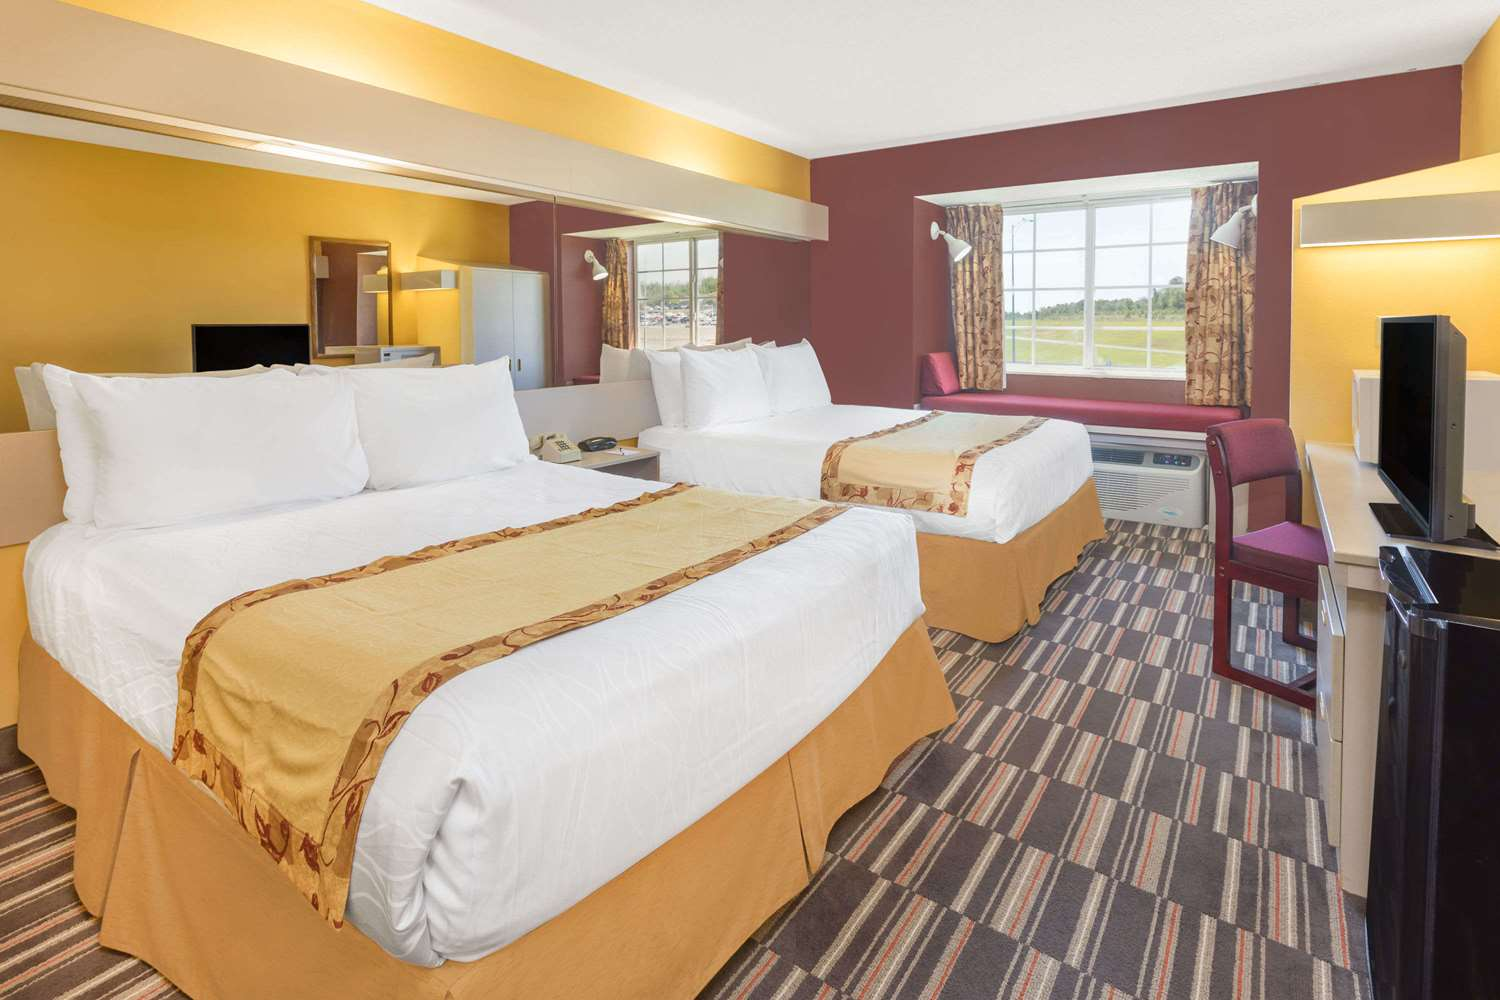 Room - Microtel Inn by Wyndham Cottondale